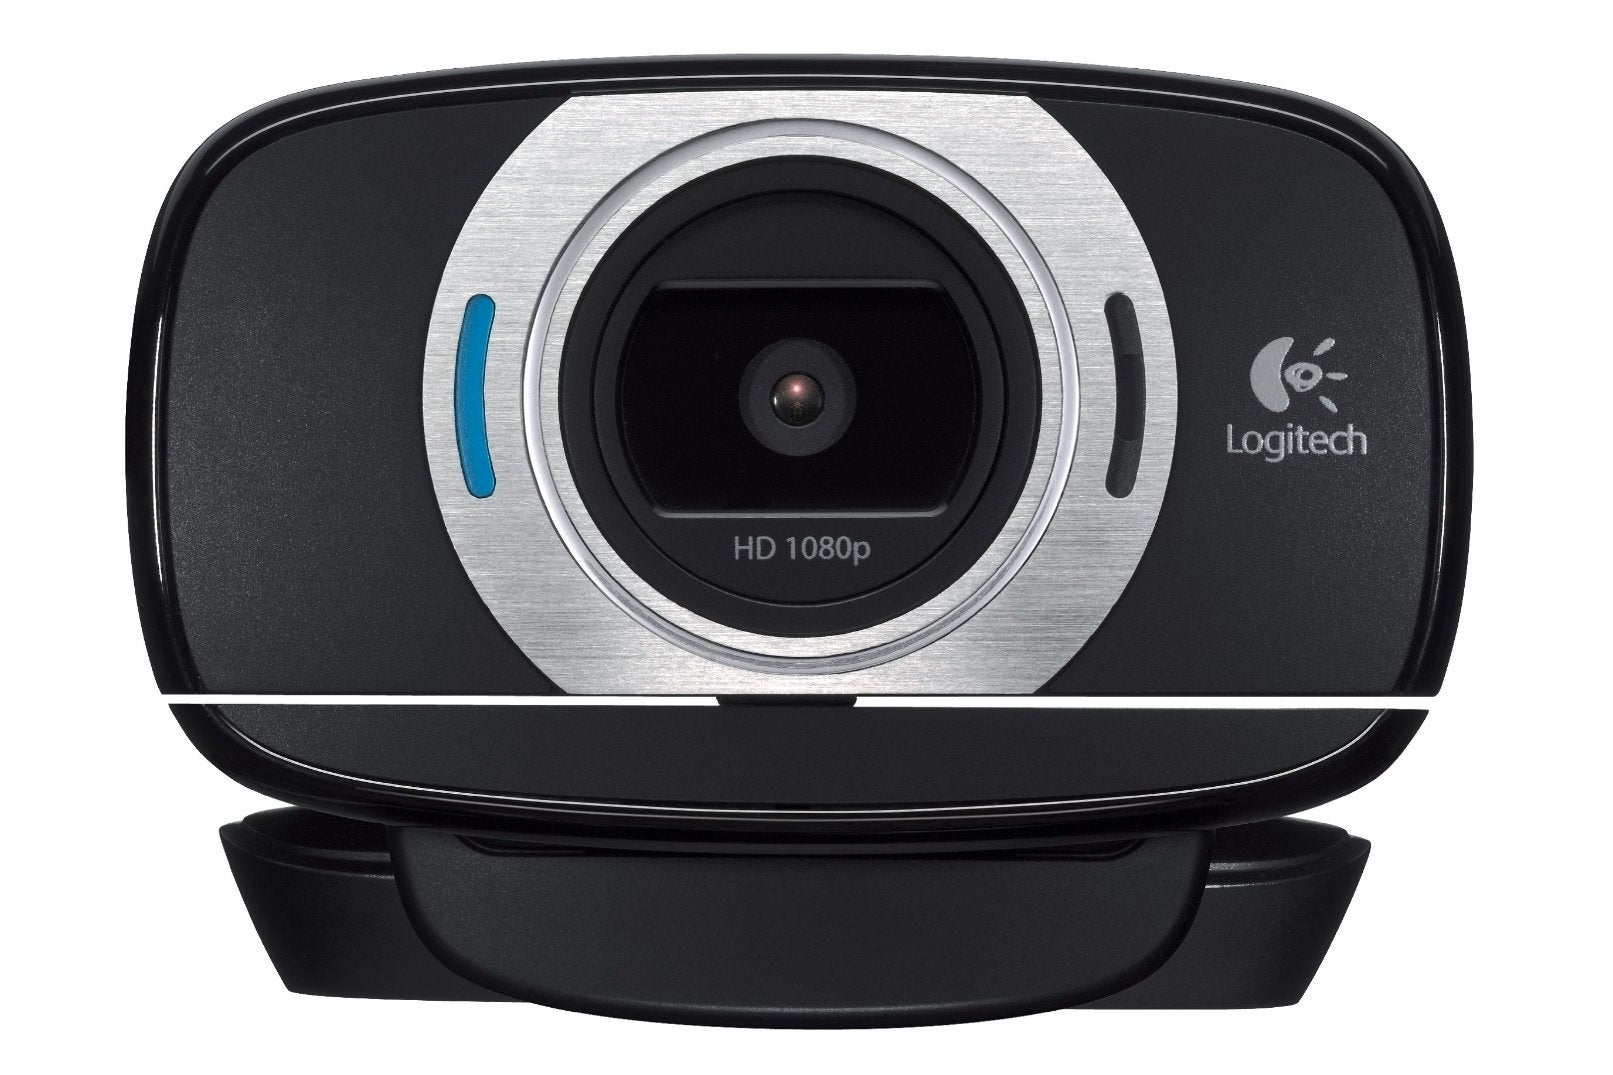 Logitech C615 HD review: This camera hits the sweet spot between features and price | TechHive